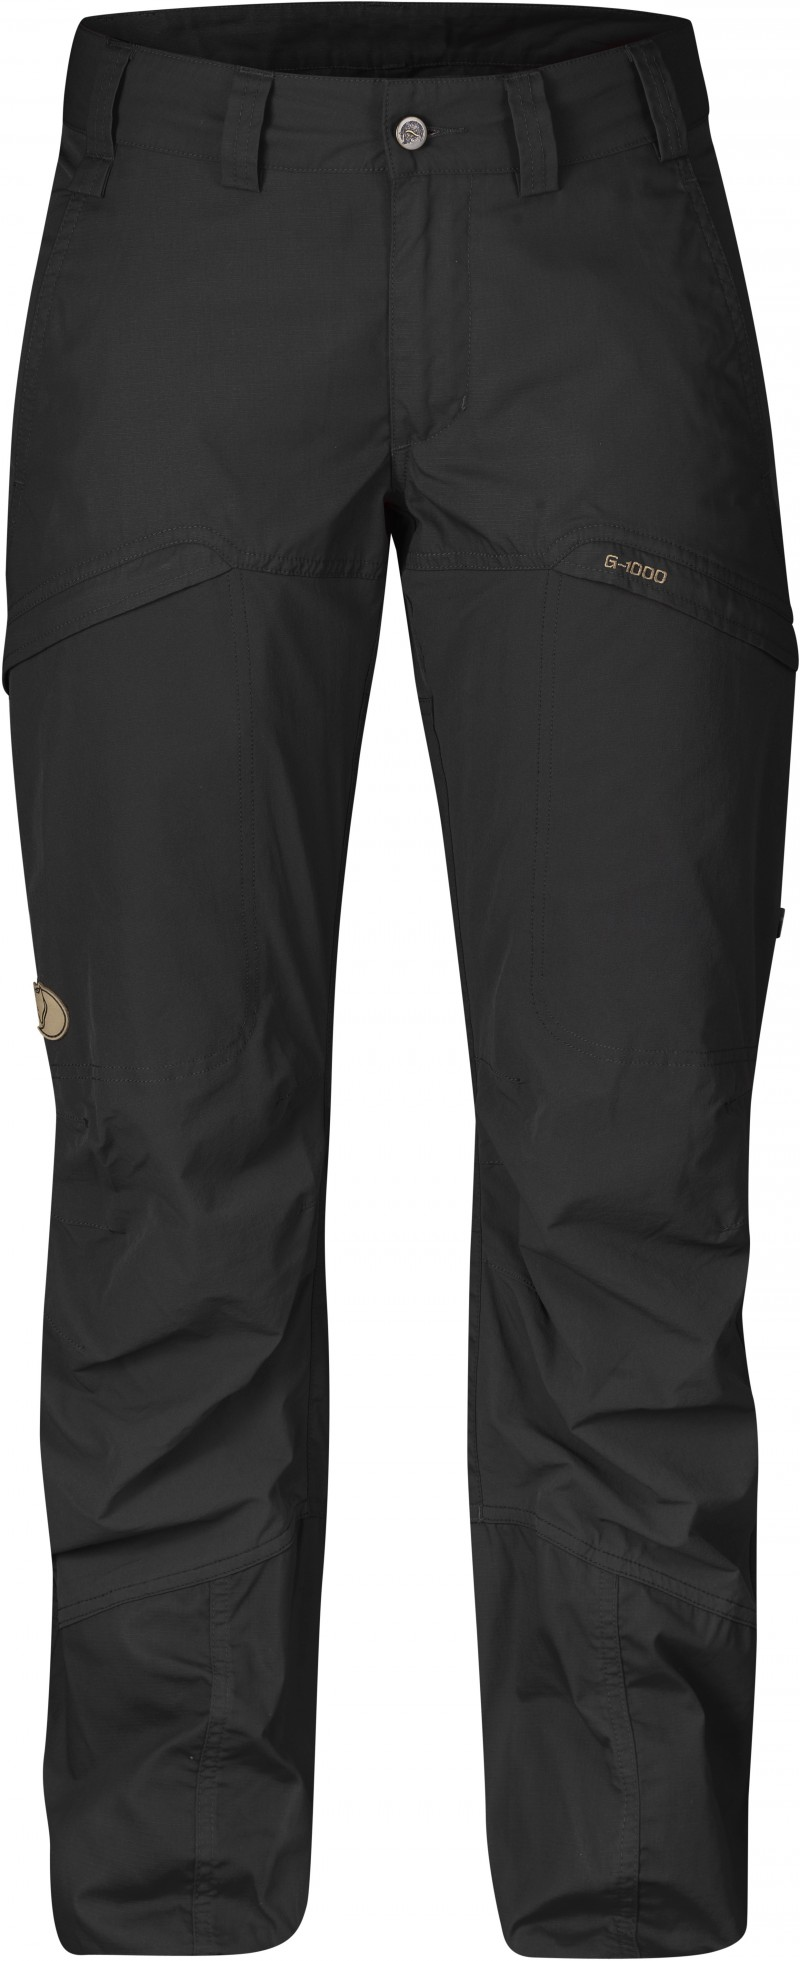 FjallRaven Tundra Trousers Black-30